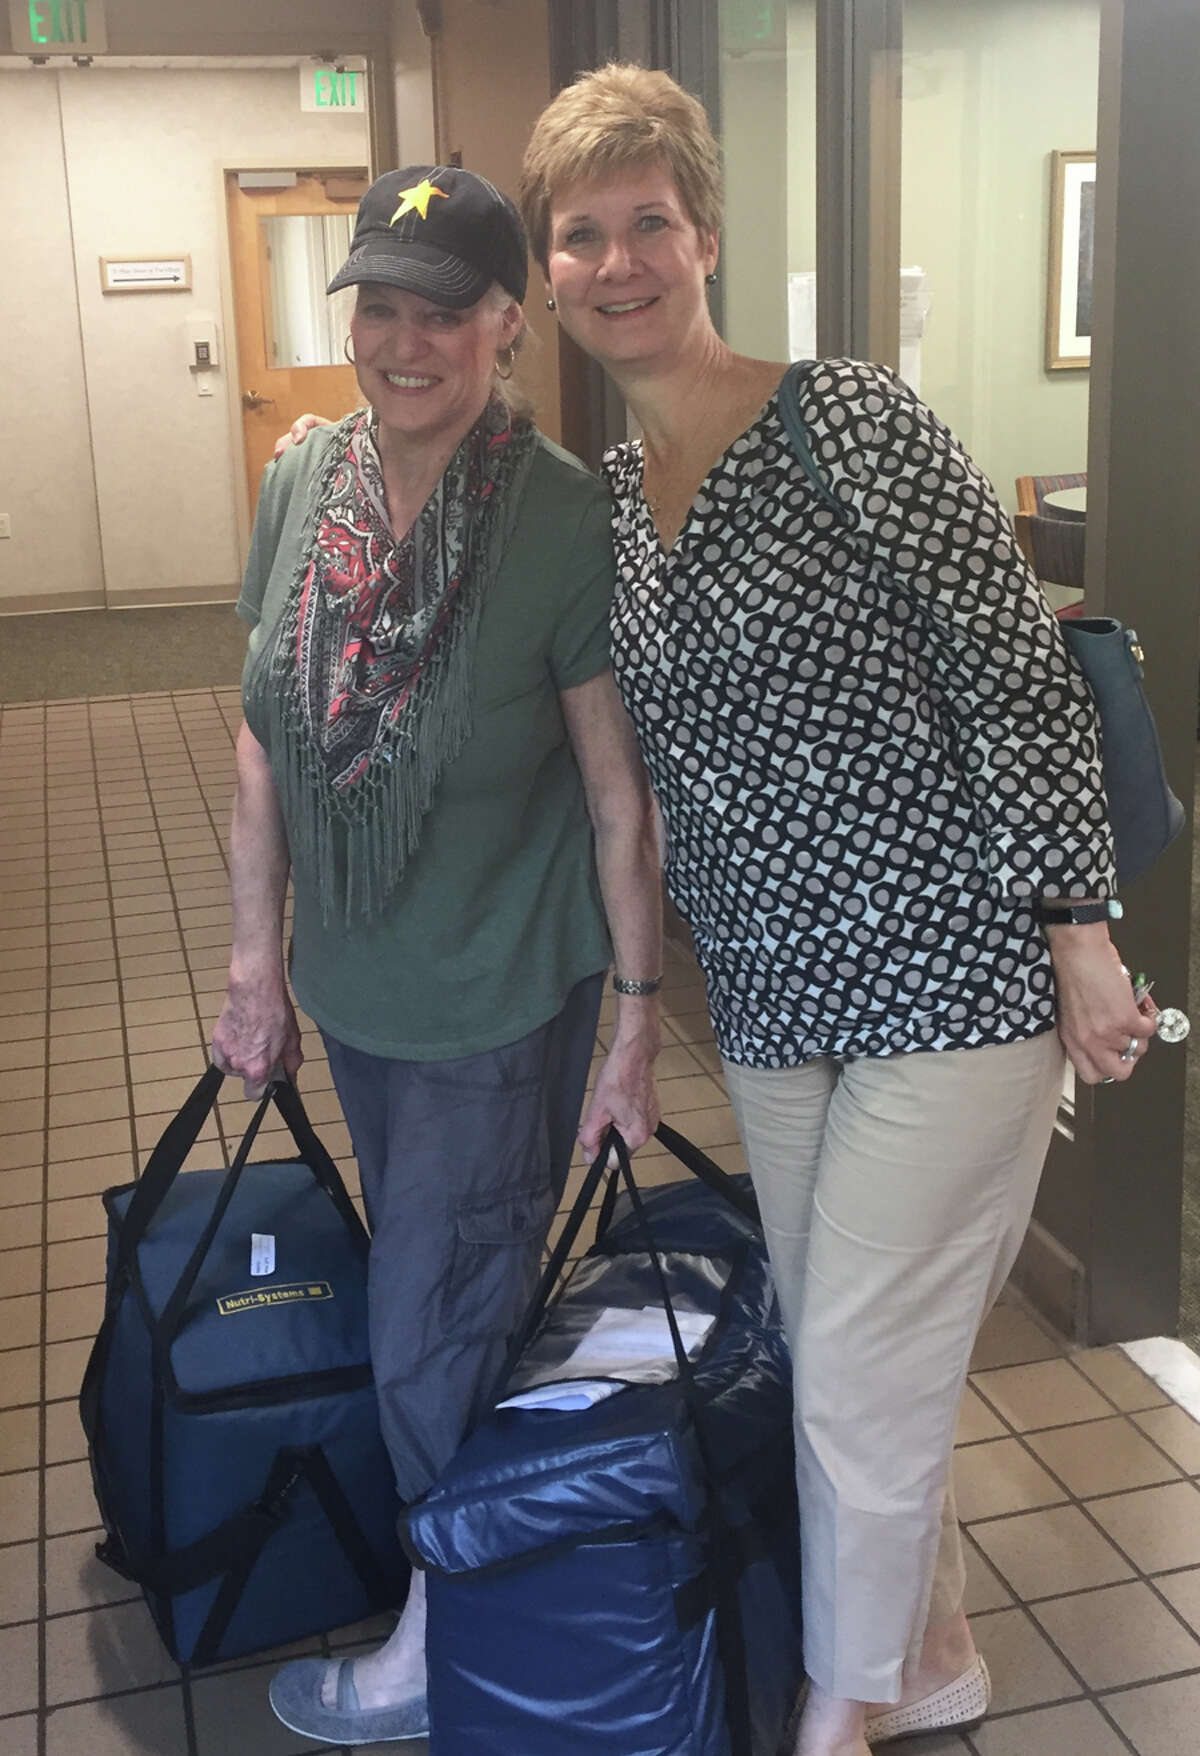 Volunteers deliver Meals on Wheels in New Canaan. The service is available to all who need help getting food from the store and cooking, regardless of age, and volunteers are needed to help with deliveries. - Meals on Wheels of New Canaan / Contributed photo